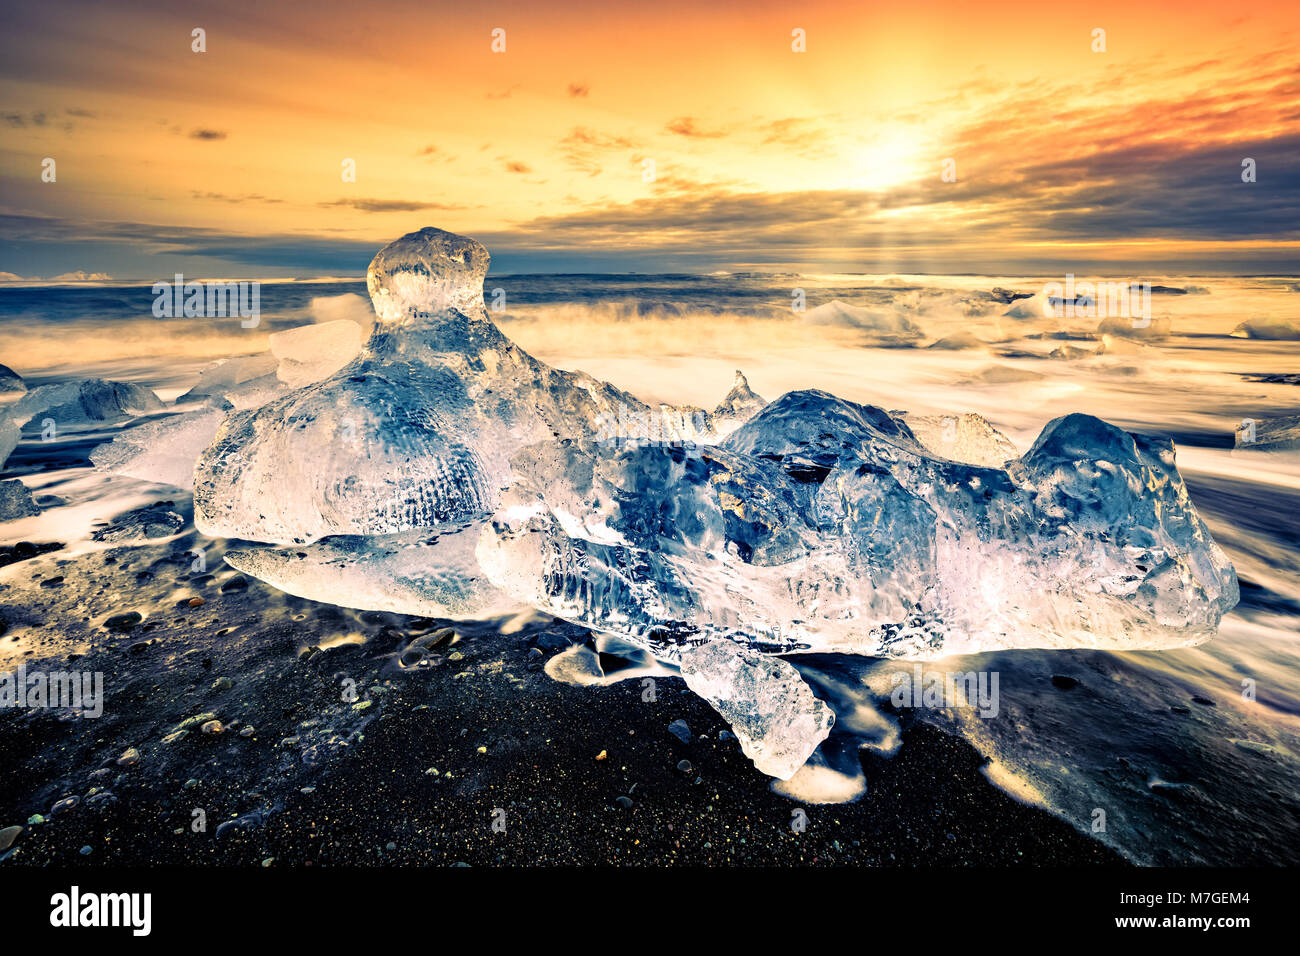 Drifting icebergs on  Diamond beach, at sunset, in Jokulsarlon, Iceland. - Stock Image